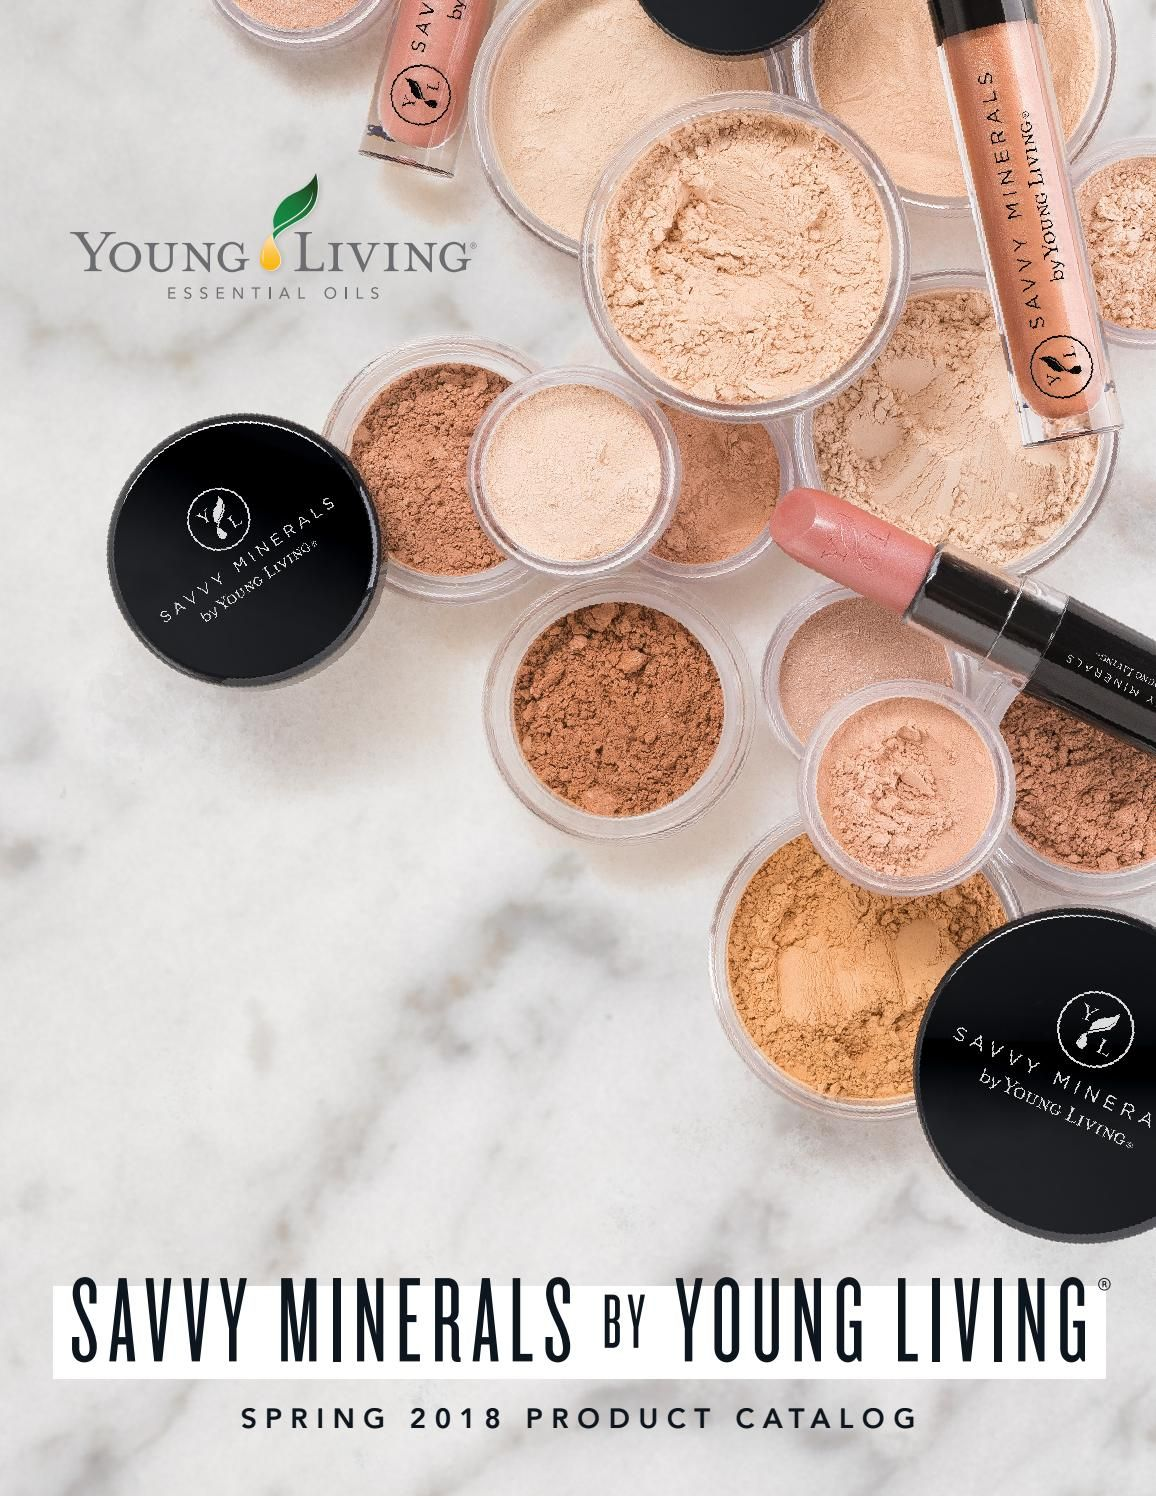 2018 Savvy Minerals by Young Living Product Catalog